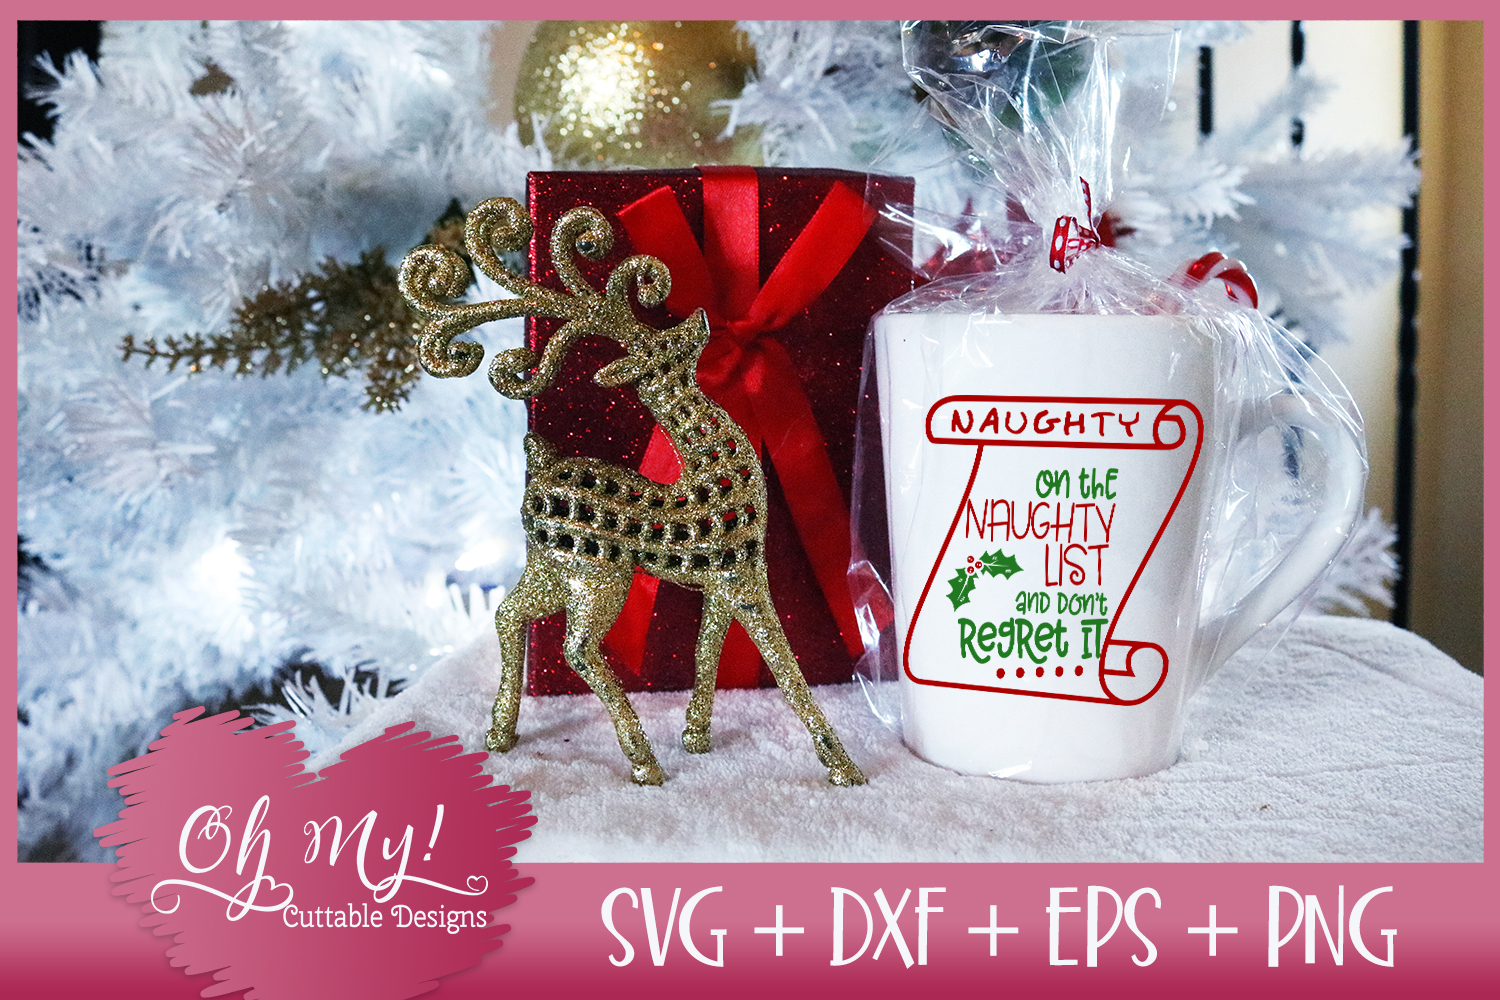 On The Naughty List And Don't Regret It - SVG EPS DXF PNG example image 2